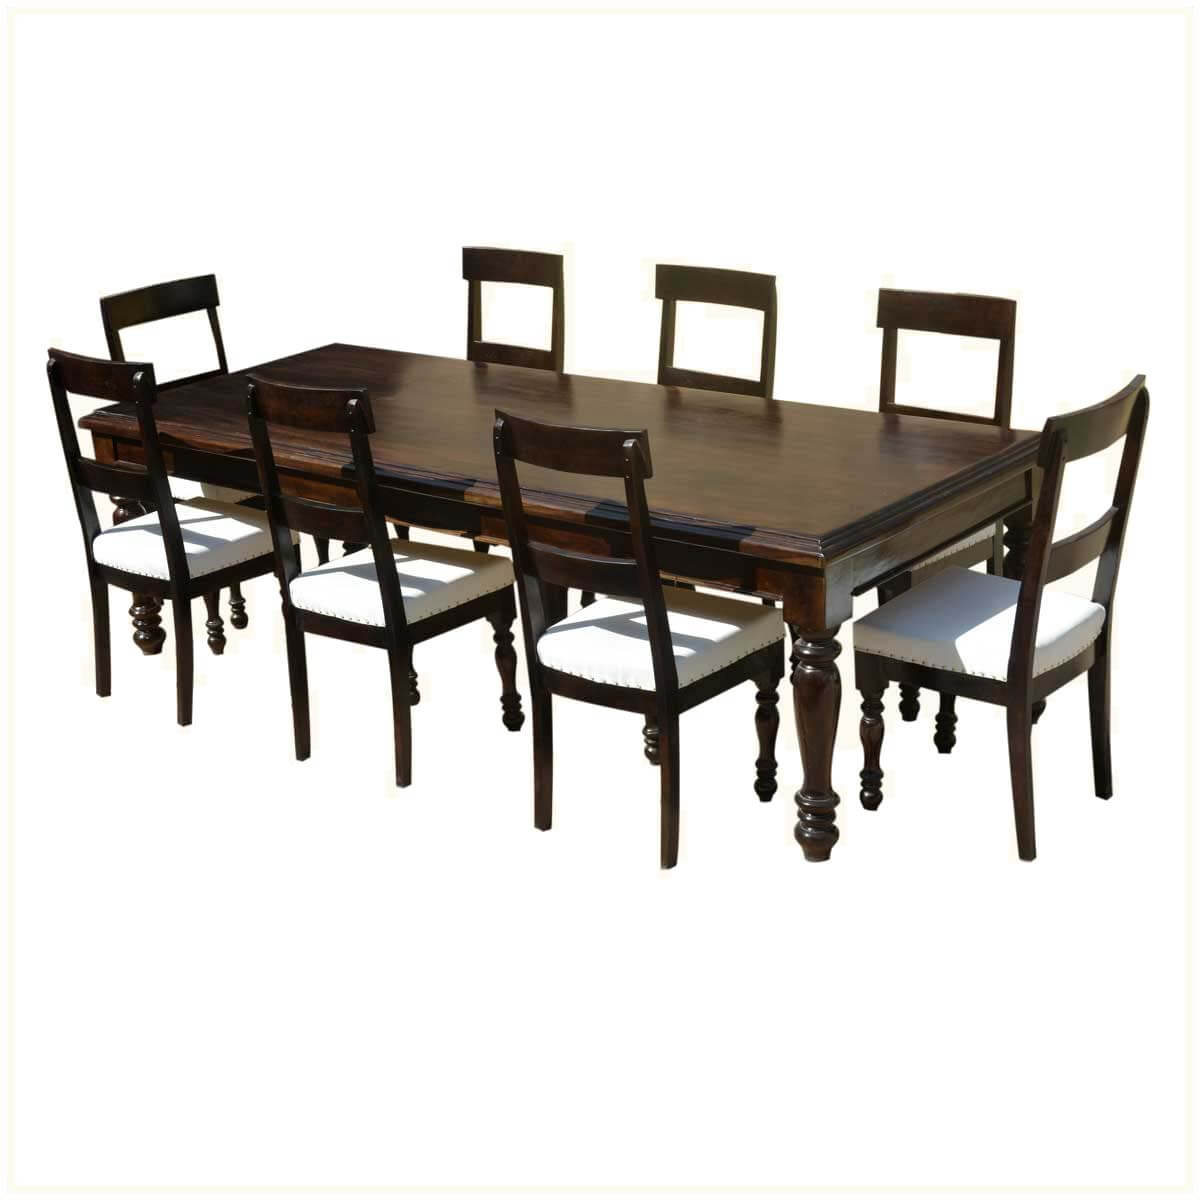 American acacia wood dining table leather upholstered chairs for Wood leather dining chairs